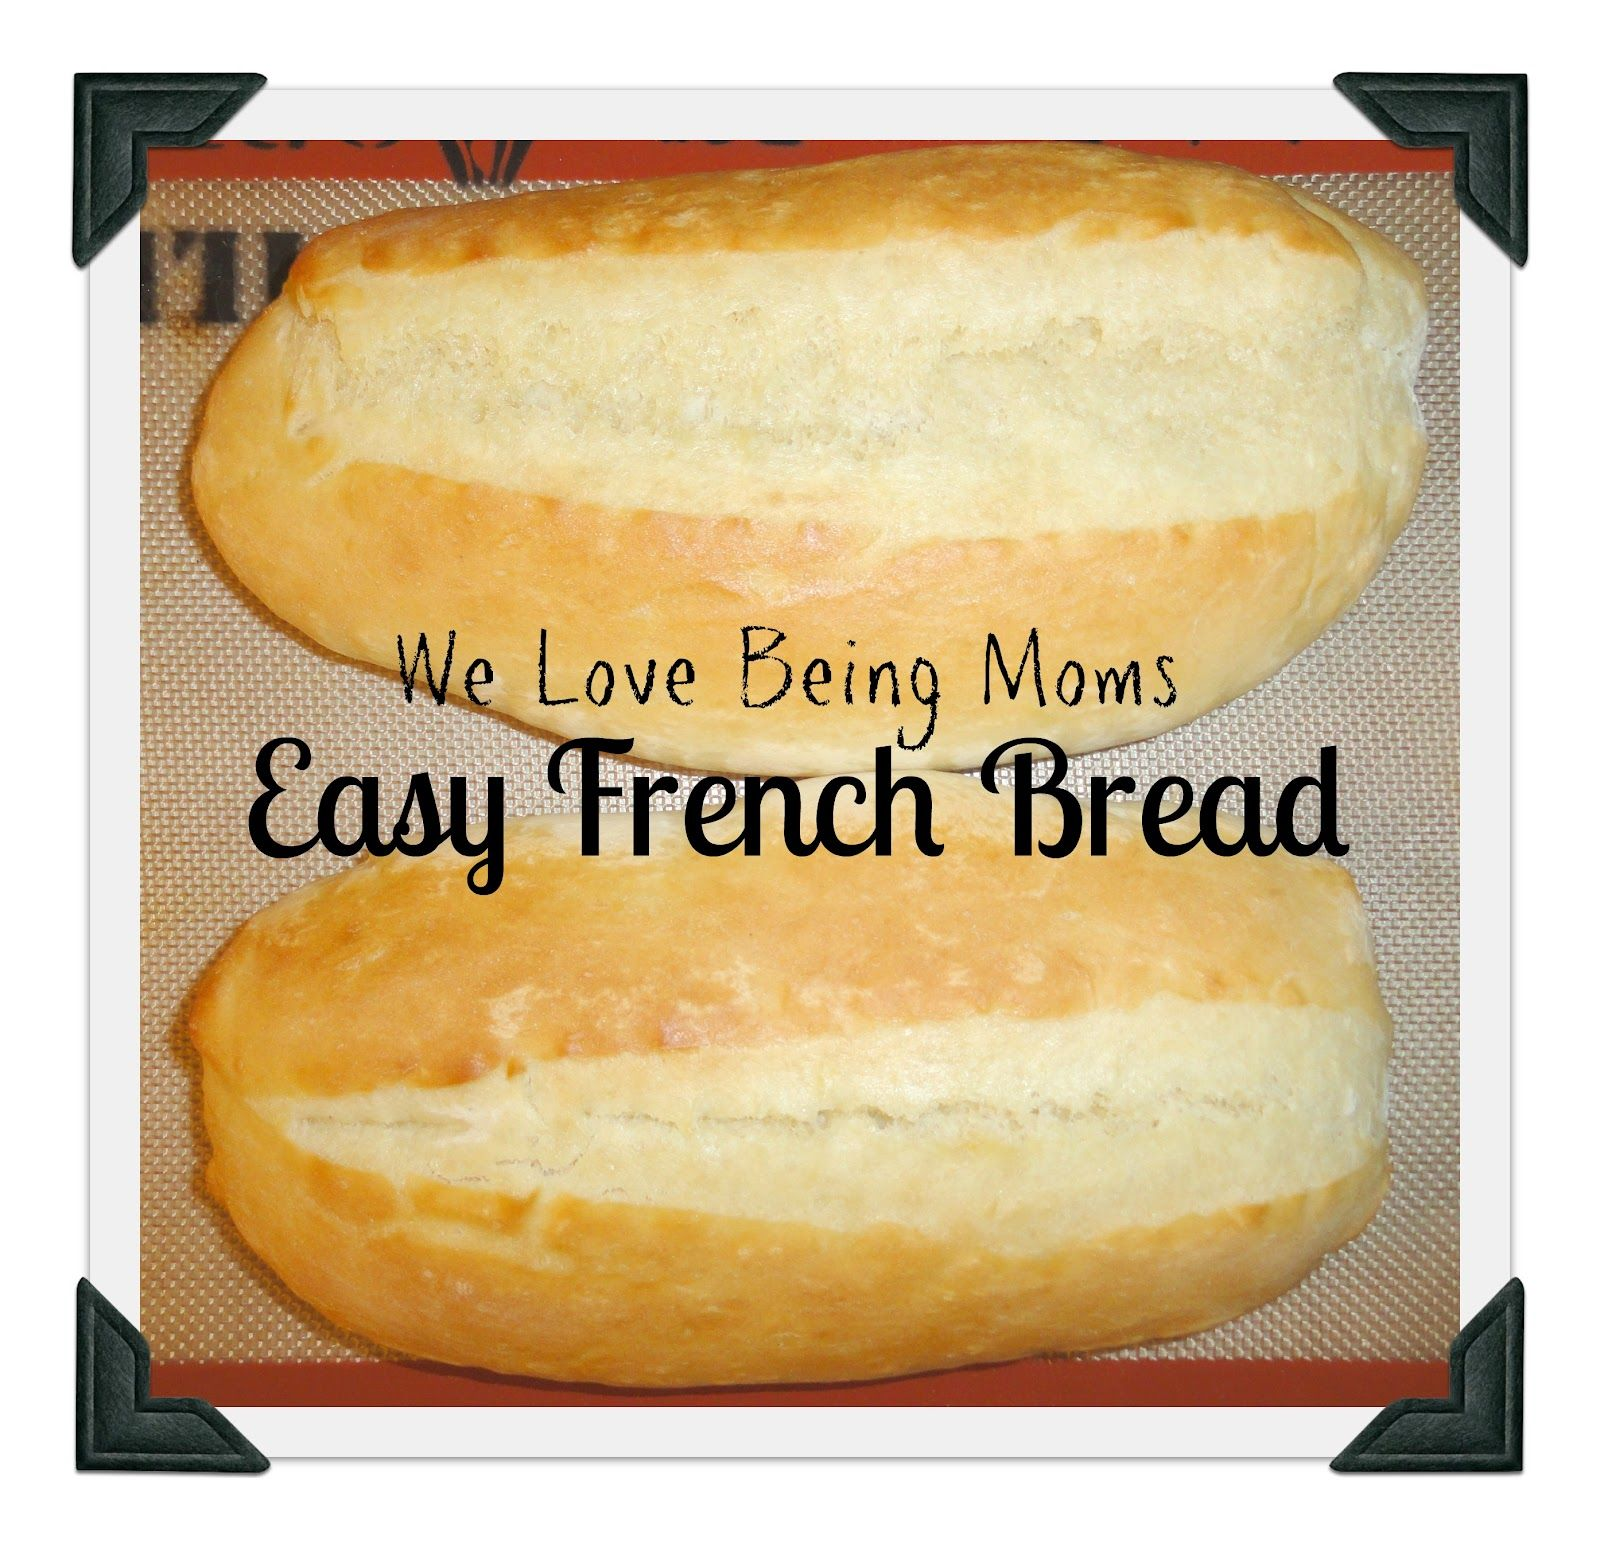 We Love Being Moms!: Easy French Bread